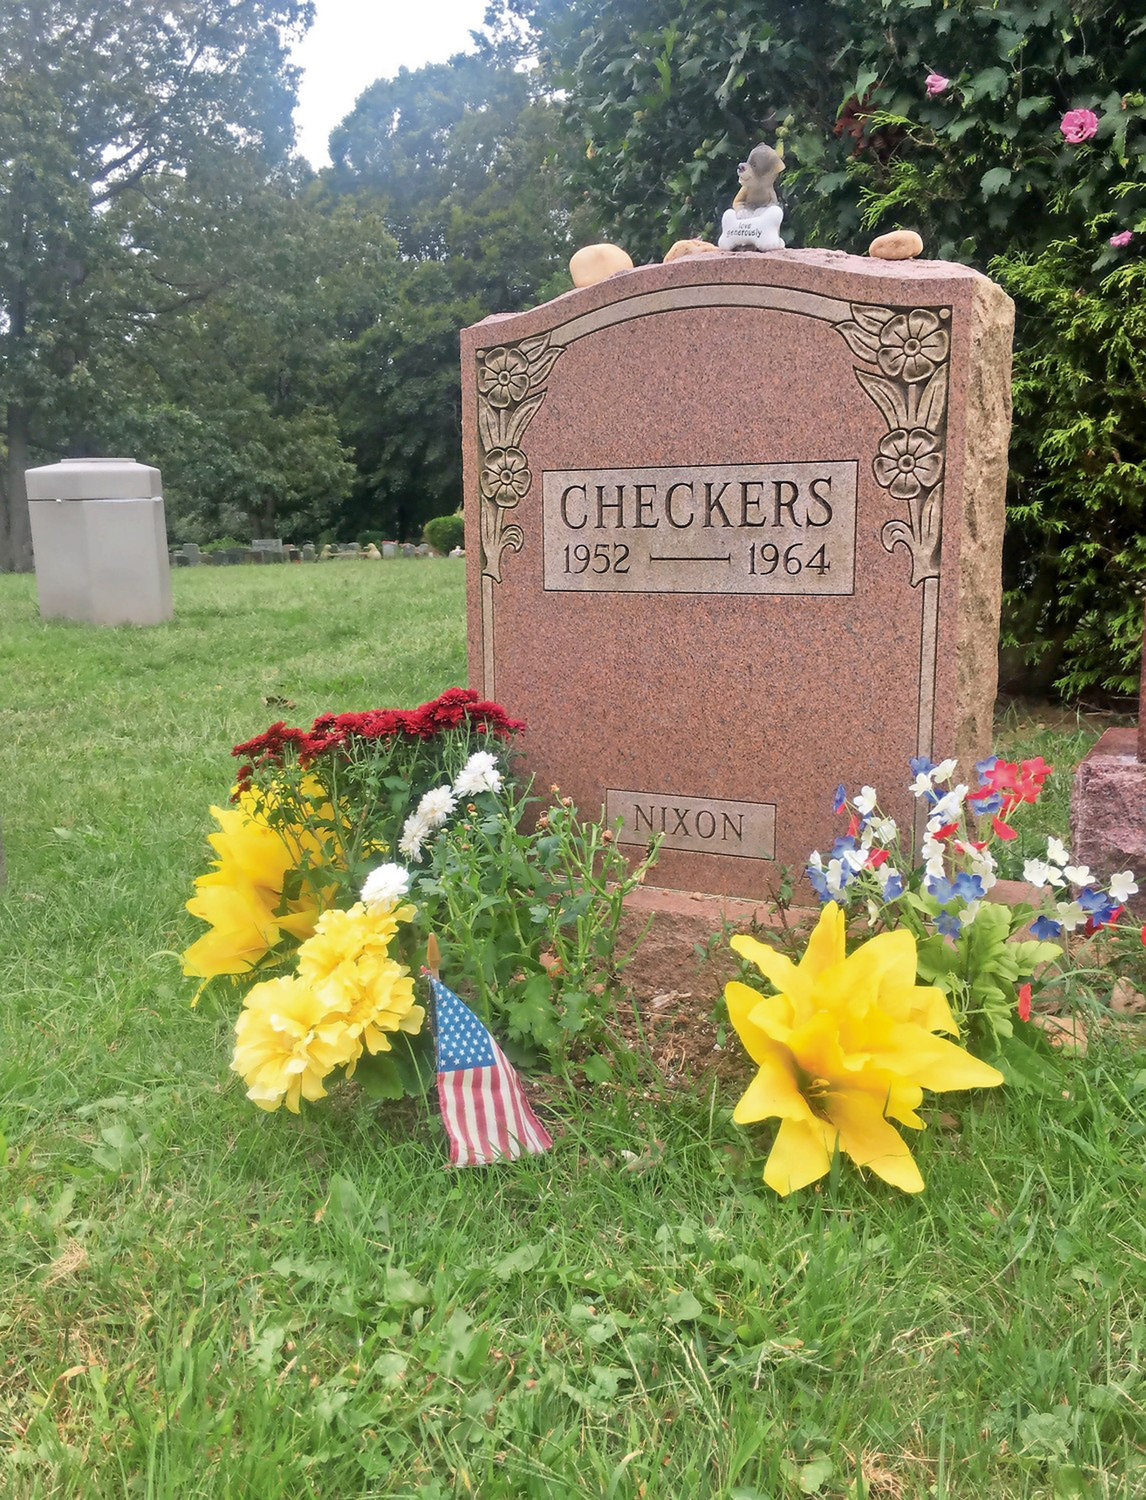 The Bideawee grave of Checkers, former president Richard Nixon's dog, whose alleged status as an illegal gift nearly sank the young politician's career in 1952.